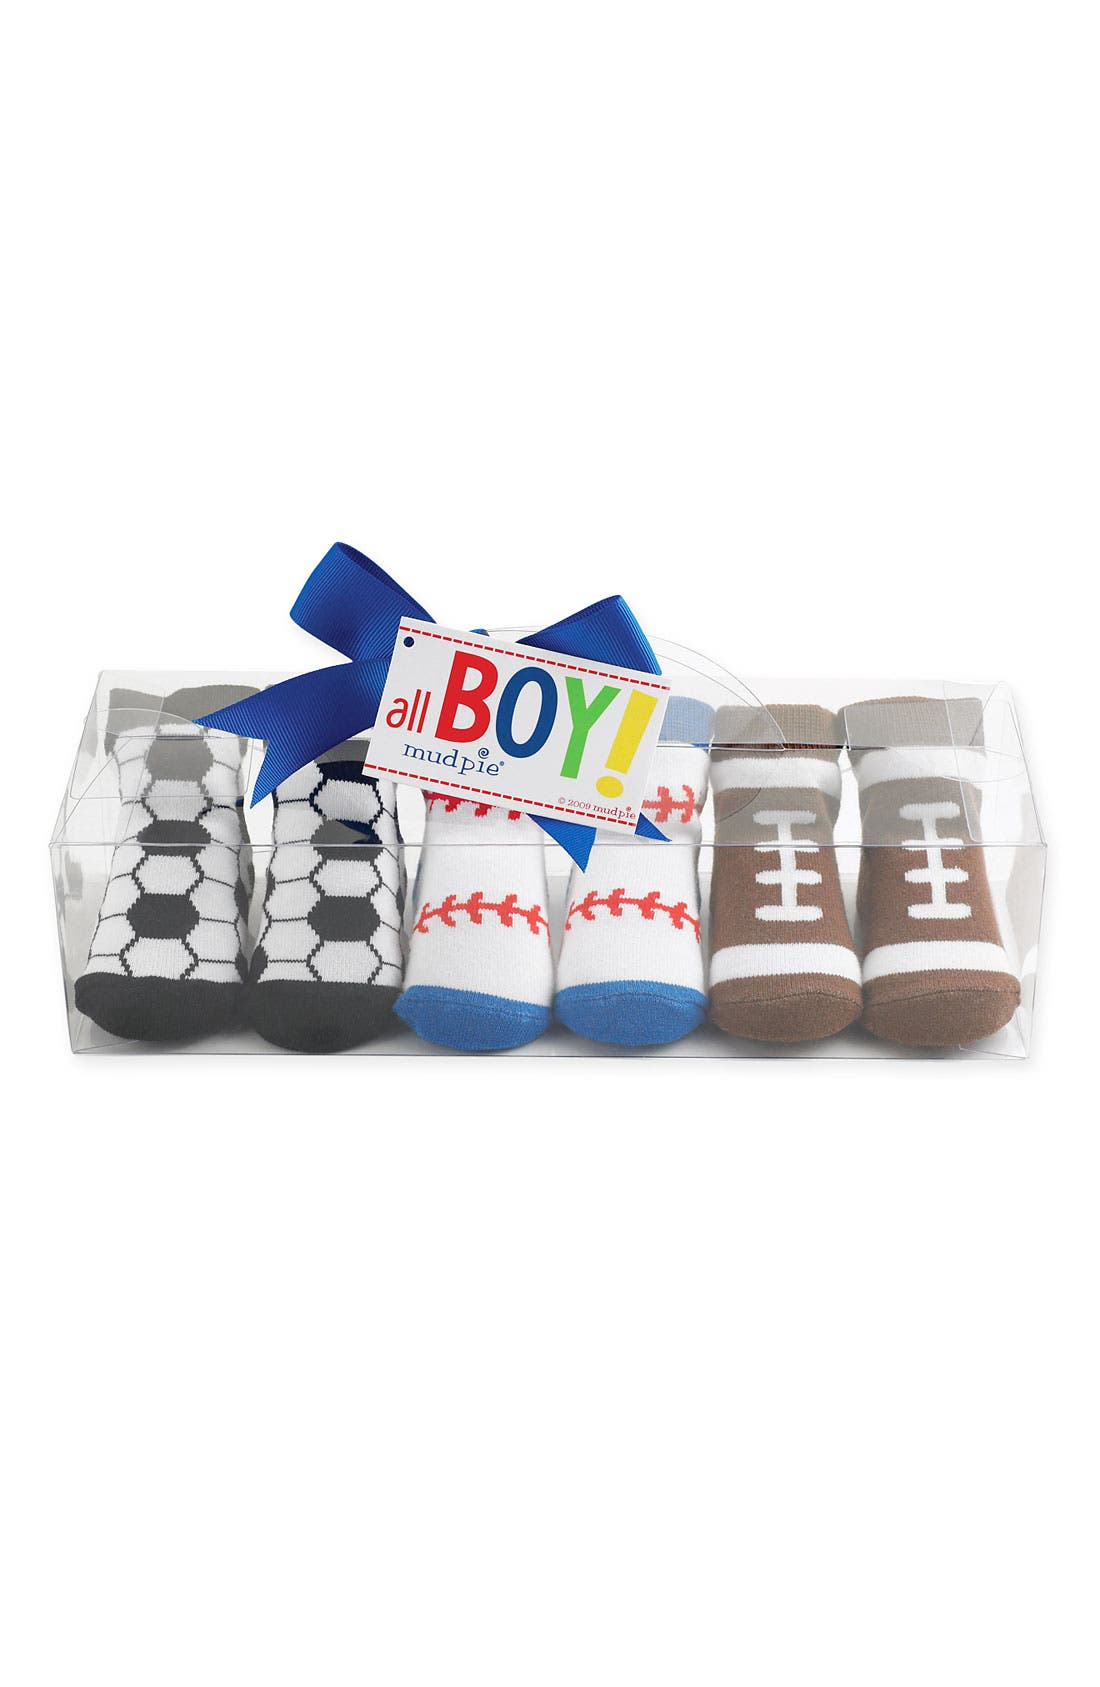 Main Image - Mud Pie Socks Set (3-Pack) (Baby Boys)